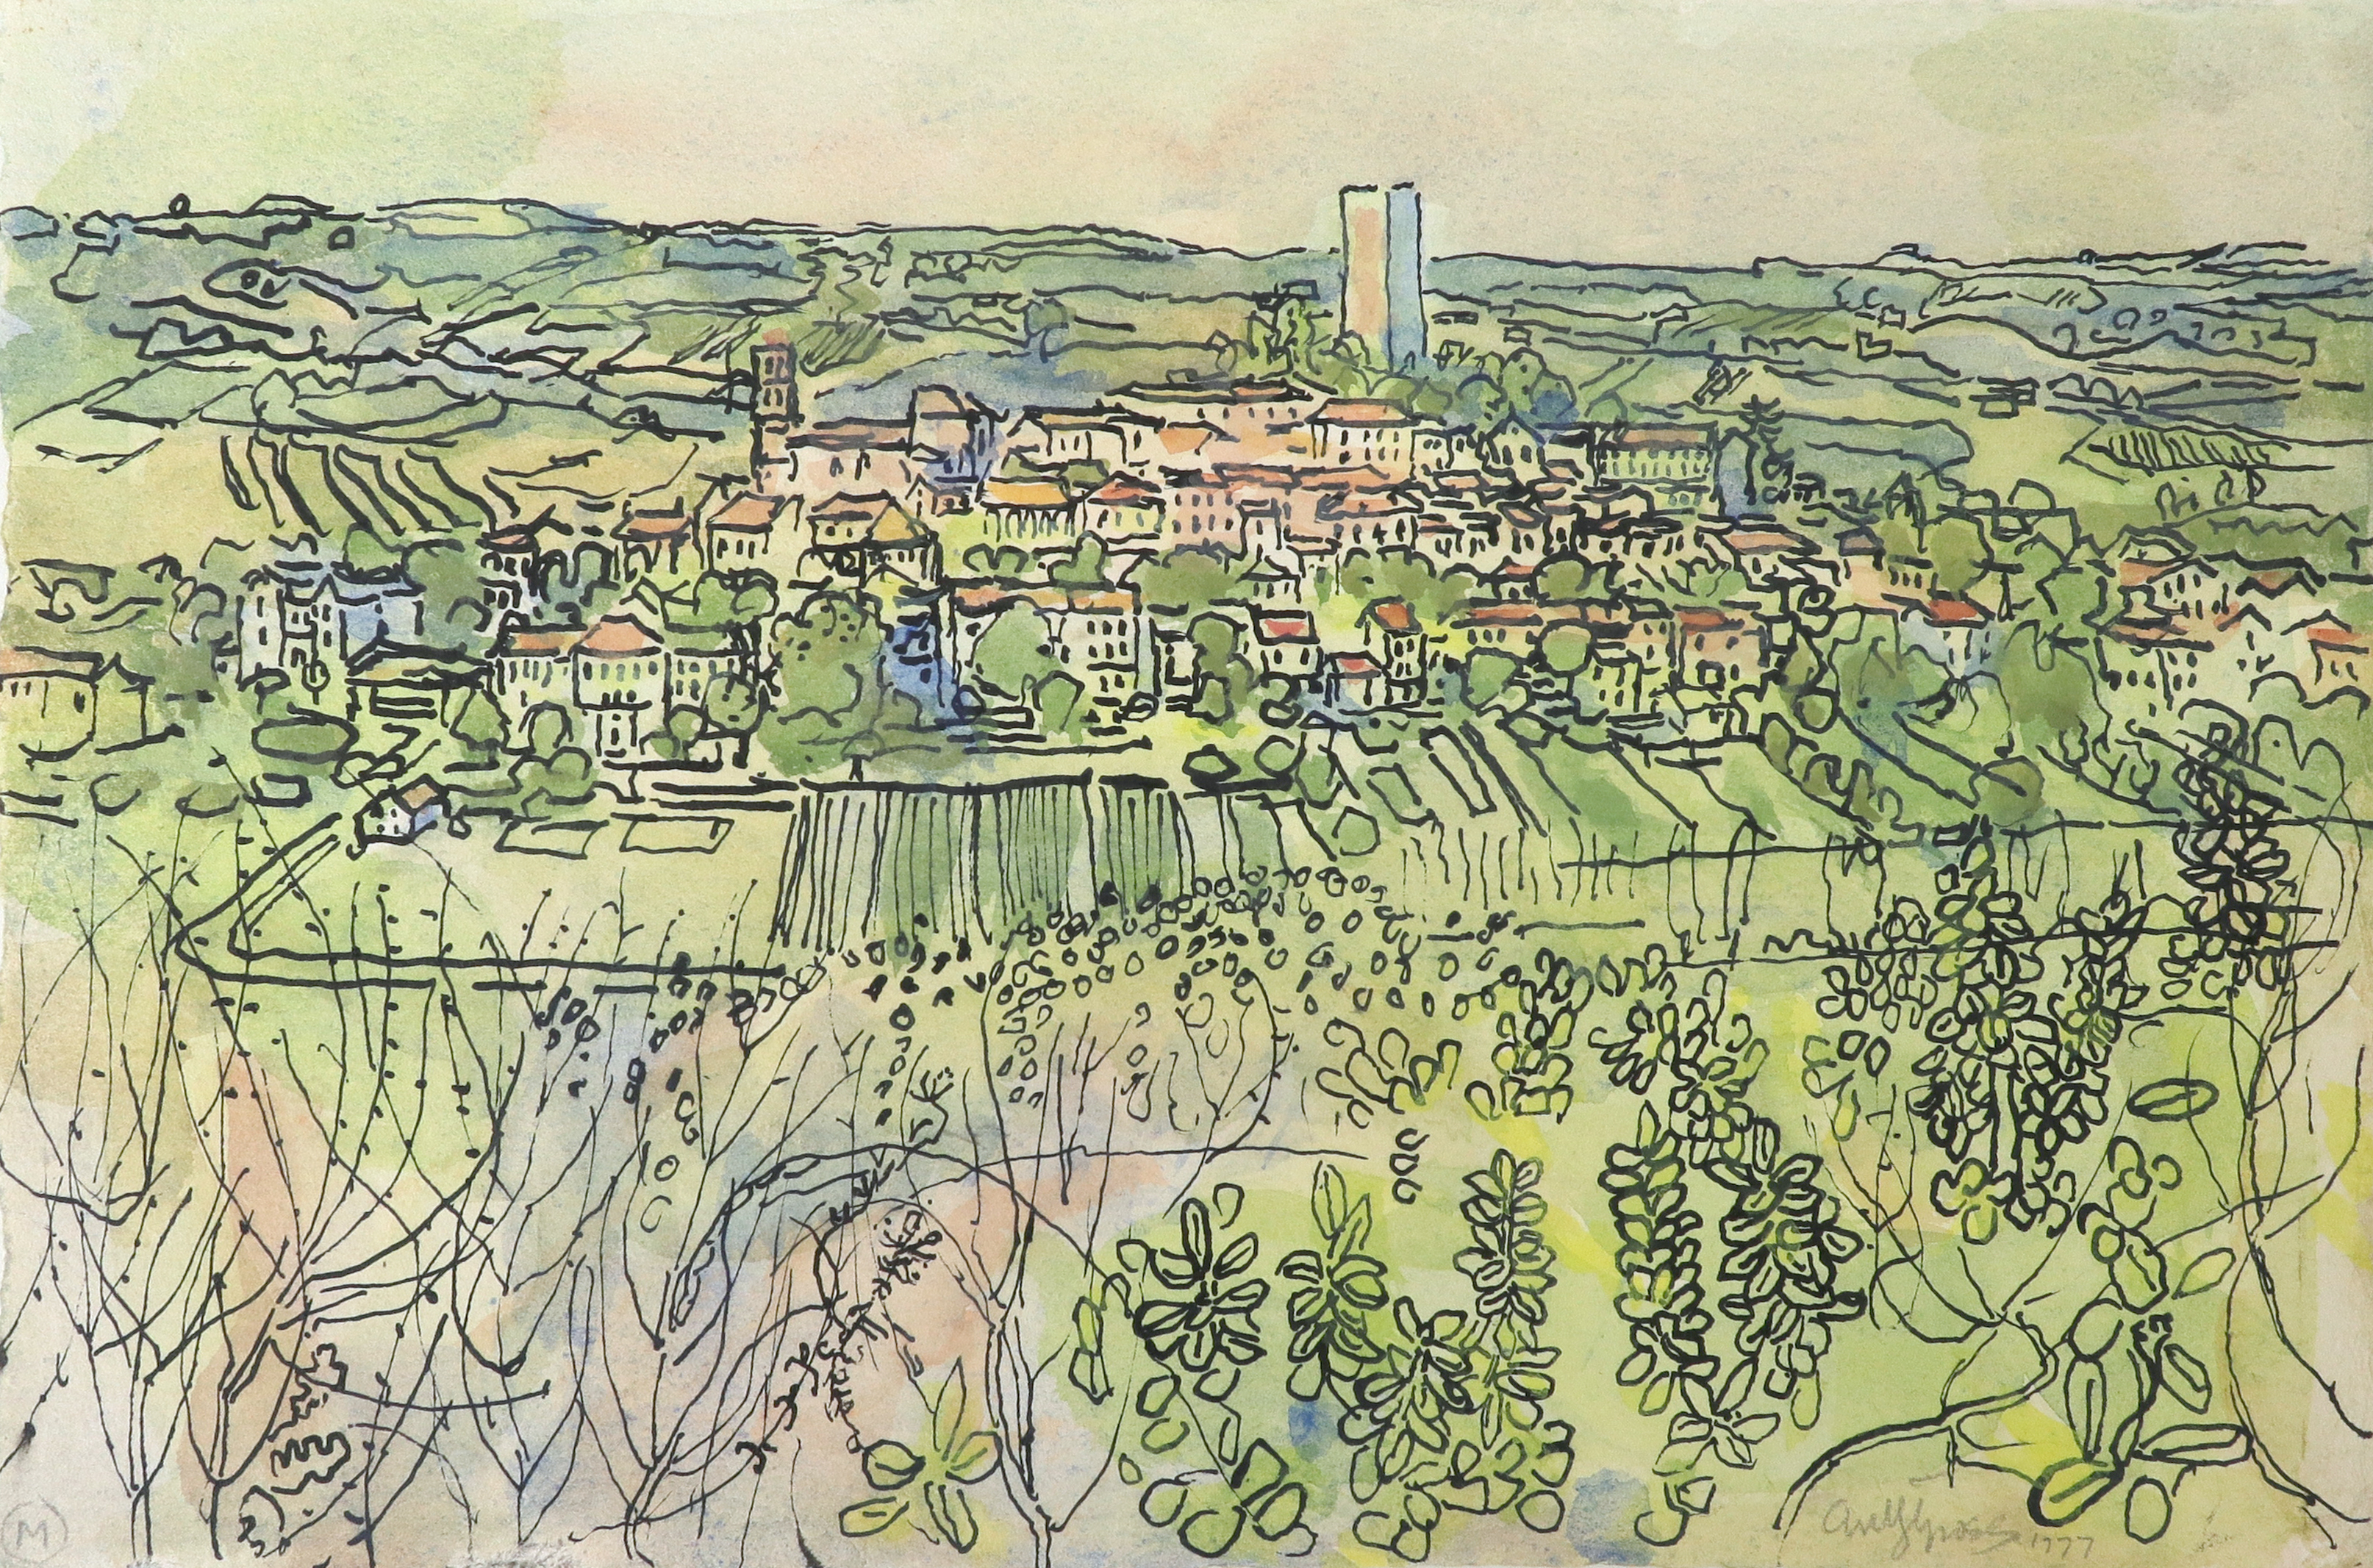 ‡Anthony Gross CBE, RA (1905-1984) A view of Montcuq, France Signed and dated antyGross 1977 (